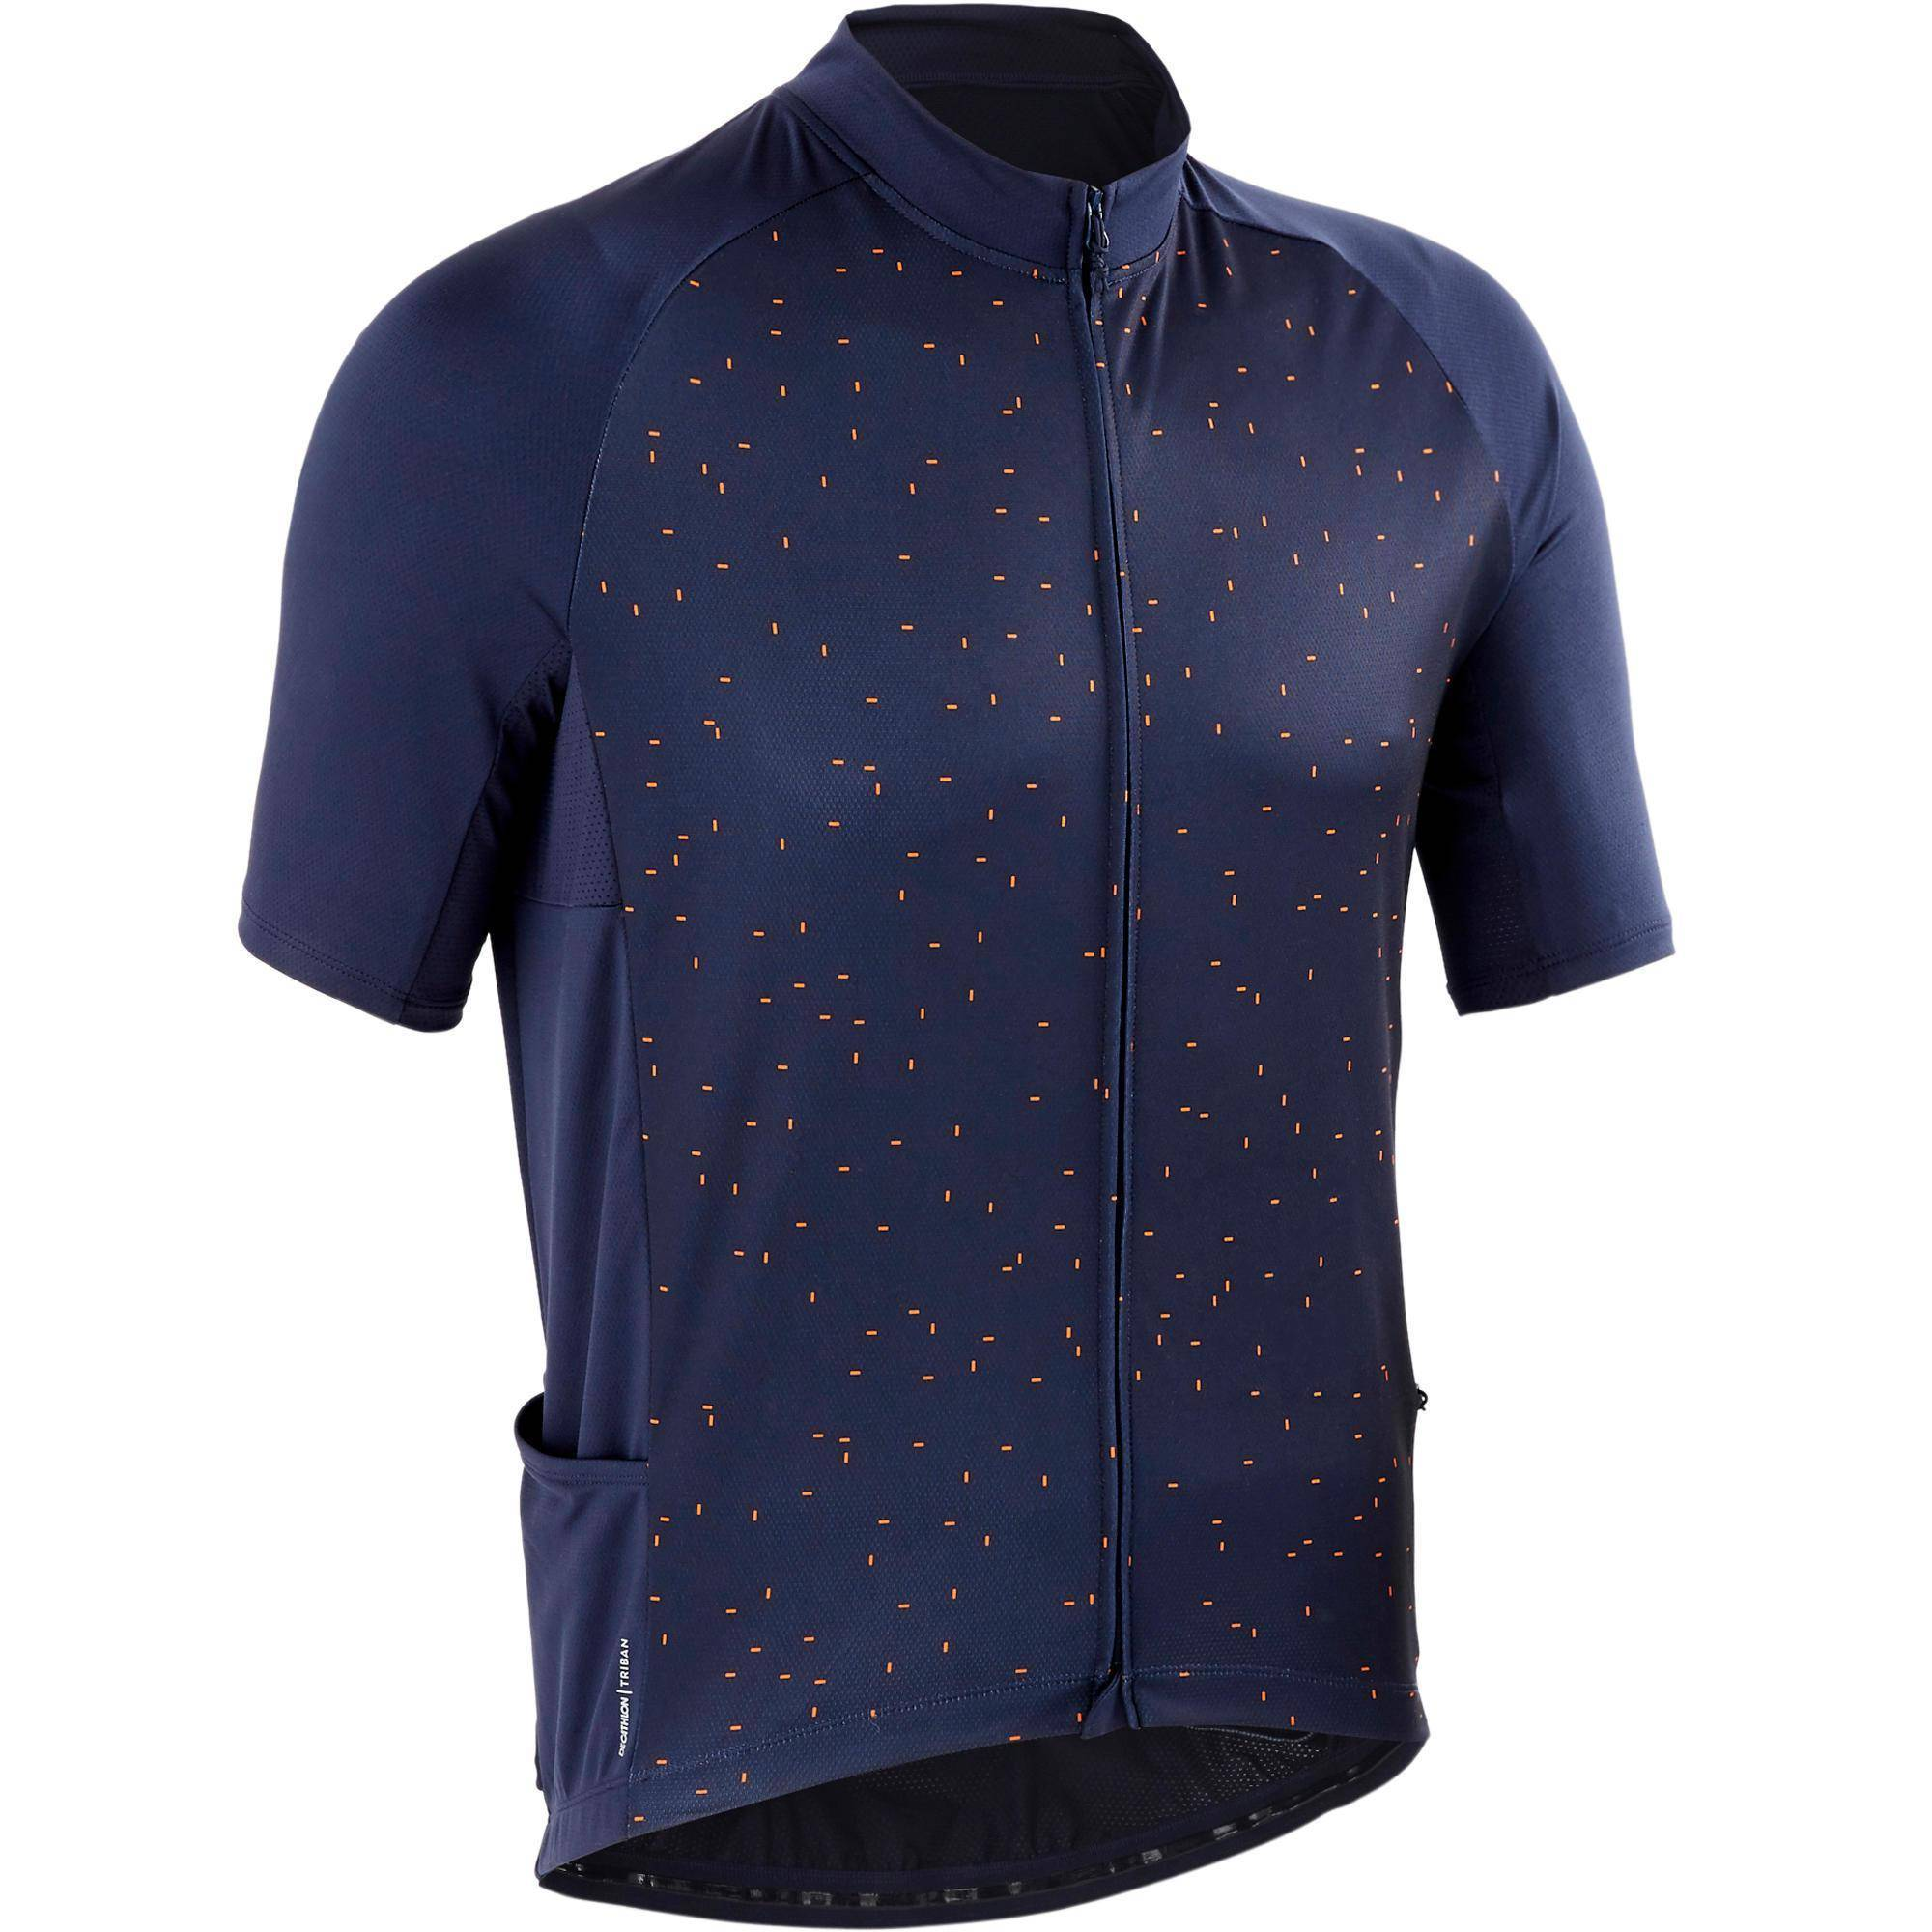 Triban MAILLOT MANCHES COURTES VELO ROUTE TPS CHAUD TRIBAN RC100 NAVY DOT - Triban